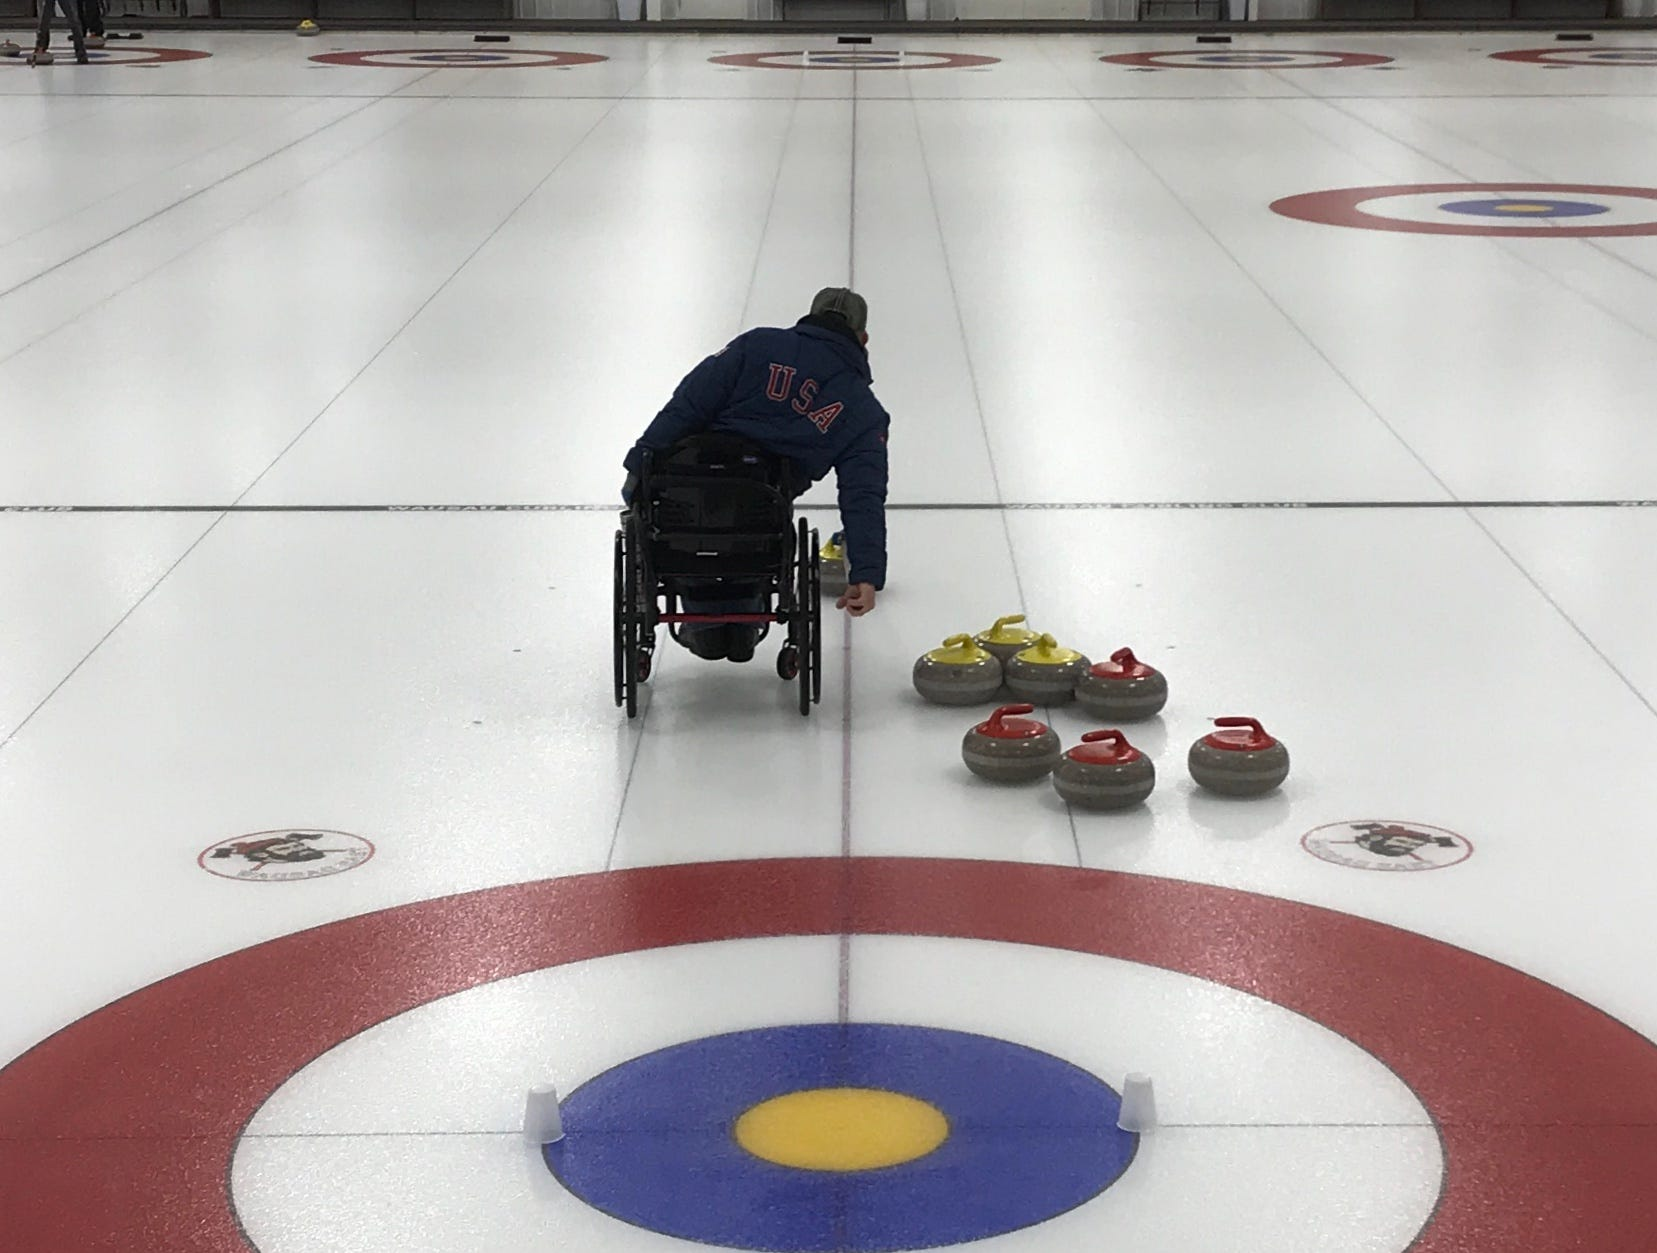 Matt Thums reckons he spends 20 or so hours a week curling in tournaments, practicing, or watching curling videos and preparing for the game mentally.